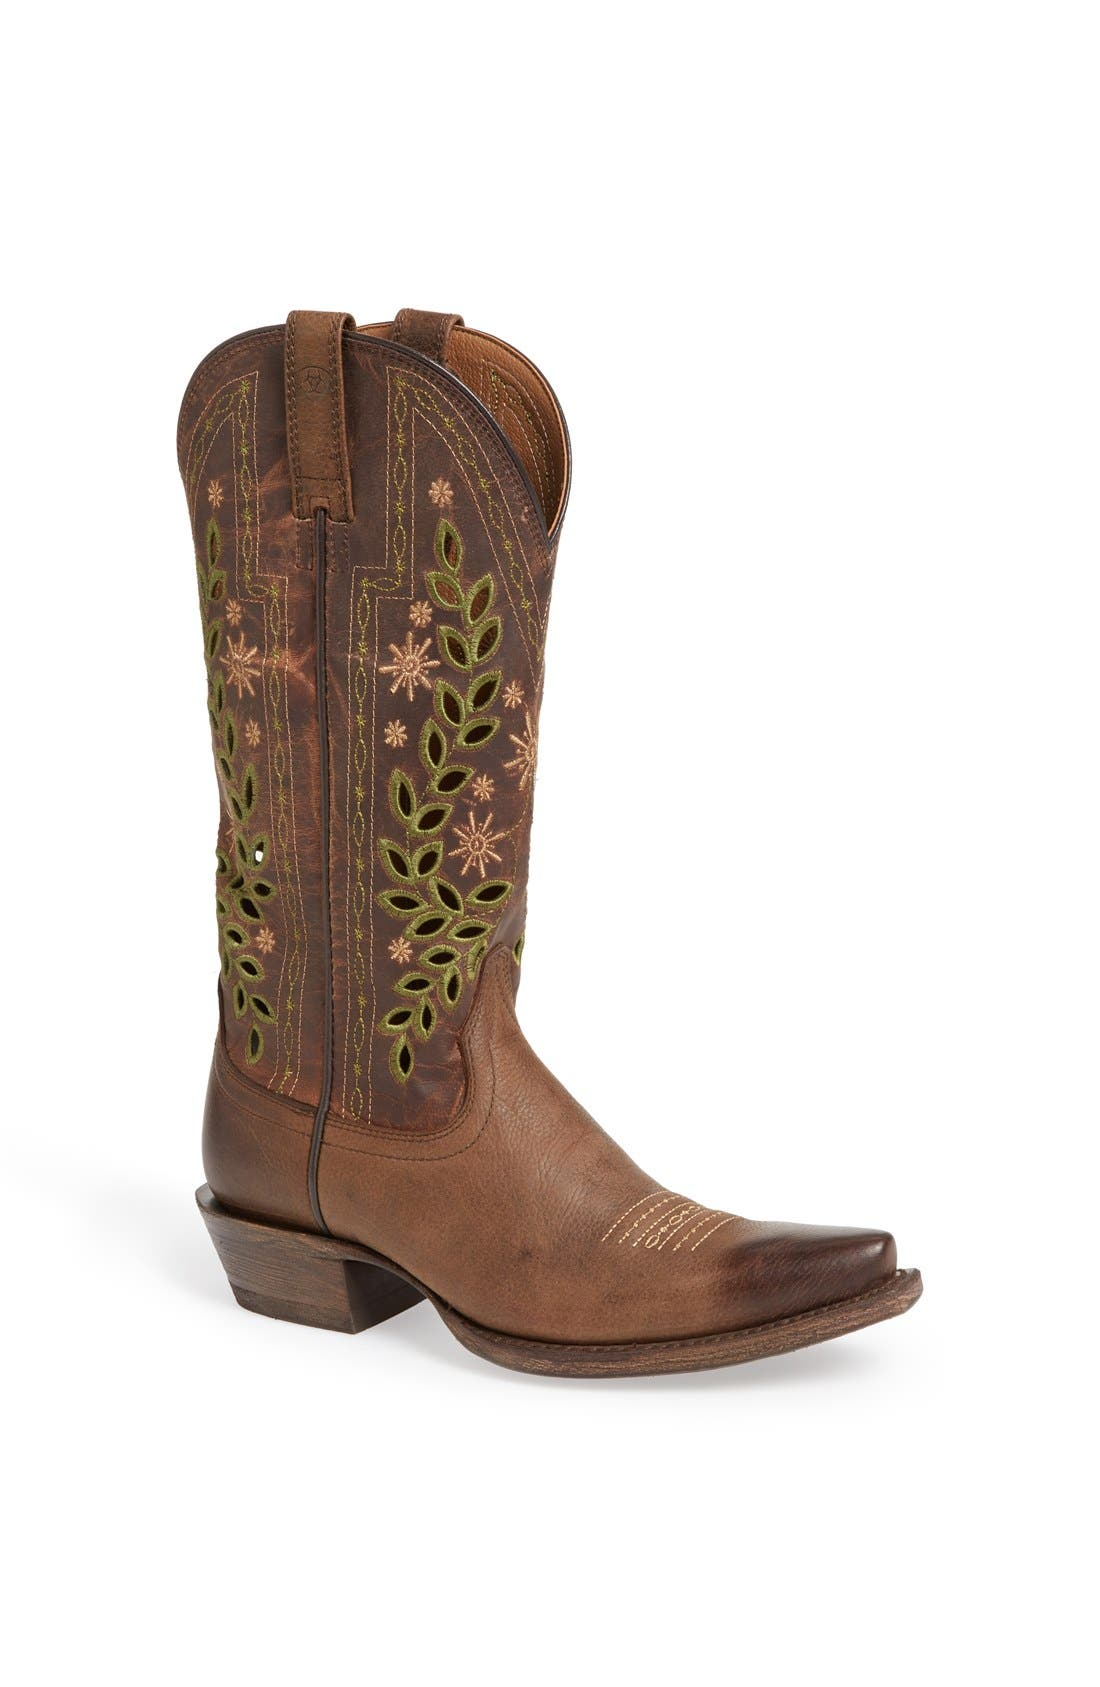 Main Image - Ariat 'Arrosa' Embroidered Cutout Western Pointed Toe Boot